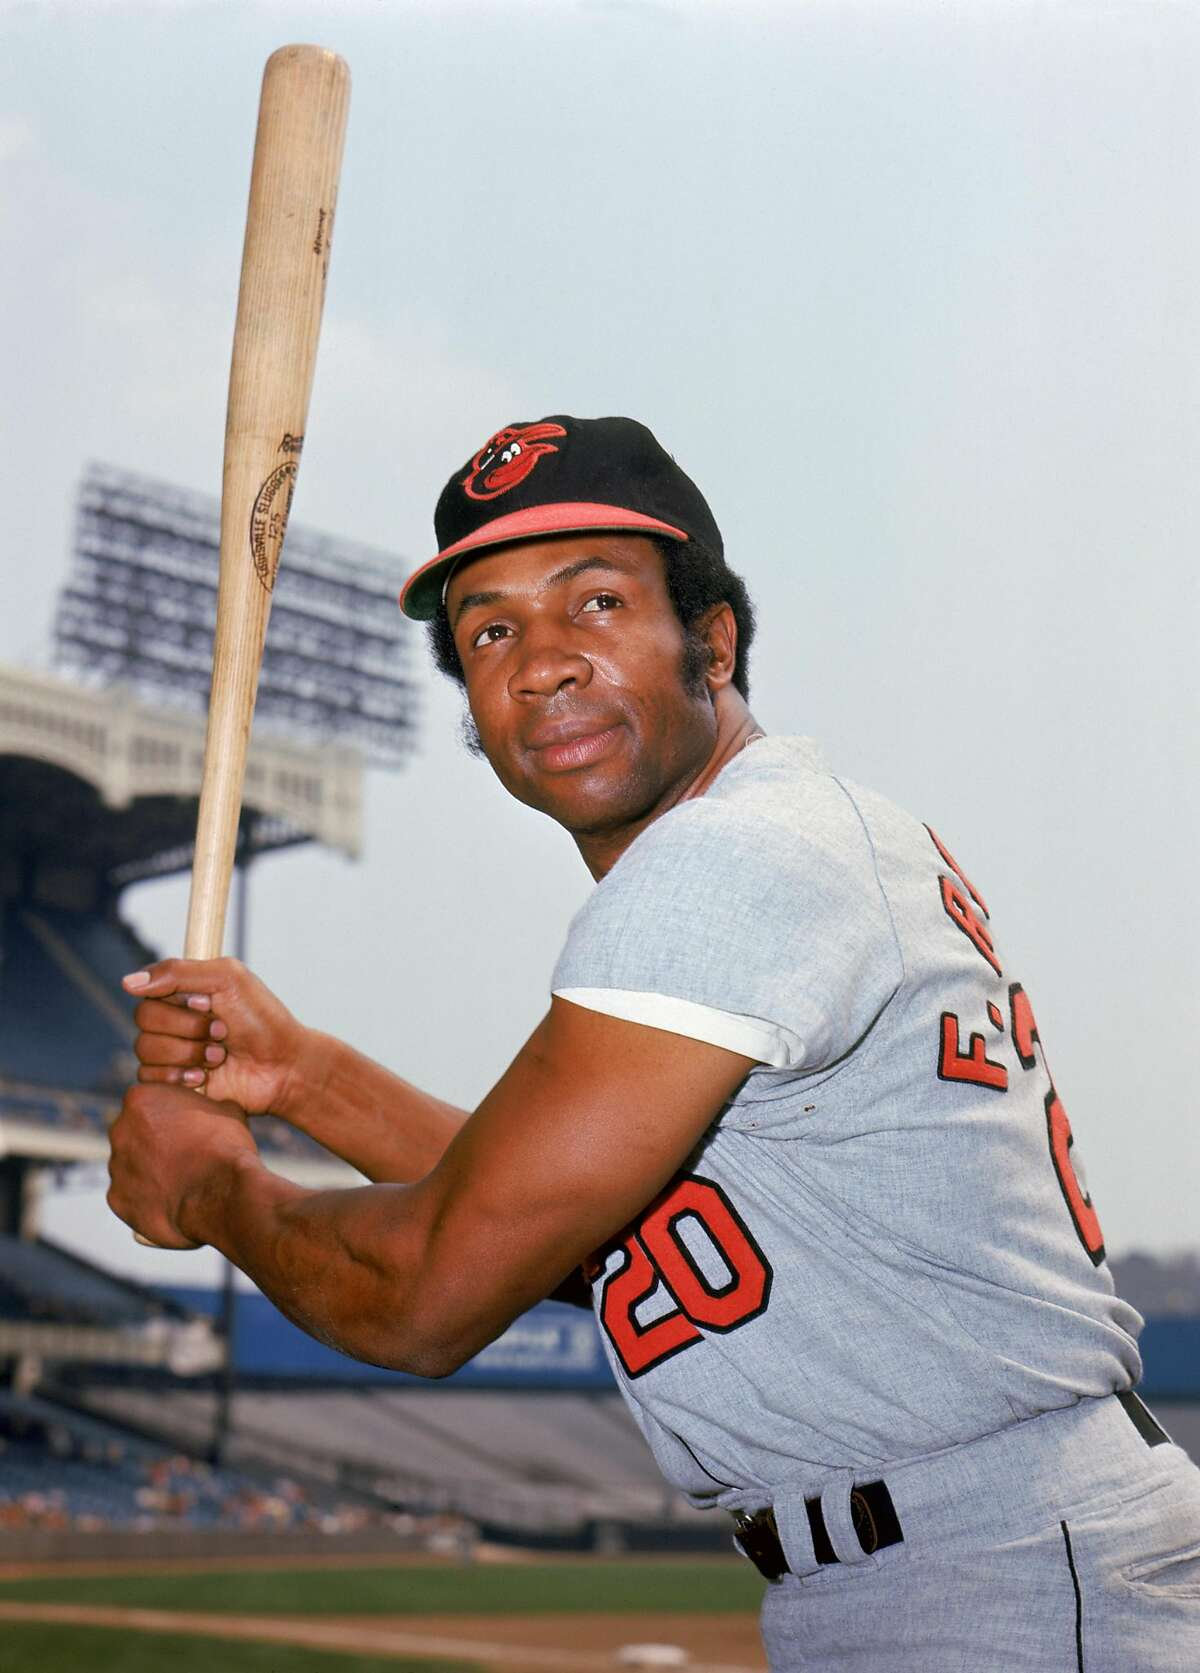 BRONX, NY - UNDATED: Outfielder Frank Robinson #20 of the Baltimore Orioles poses for a portrait circa 1966-71 in Yankee Stadium in Bronx, New York. (Photo by Louis Requena/MLB Photos via Getty Images)